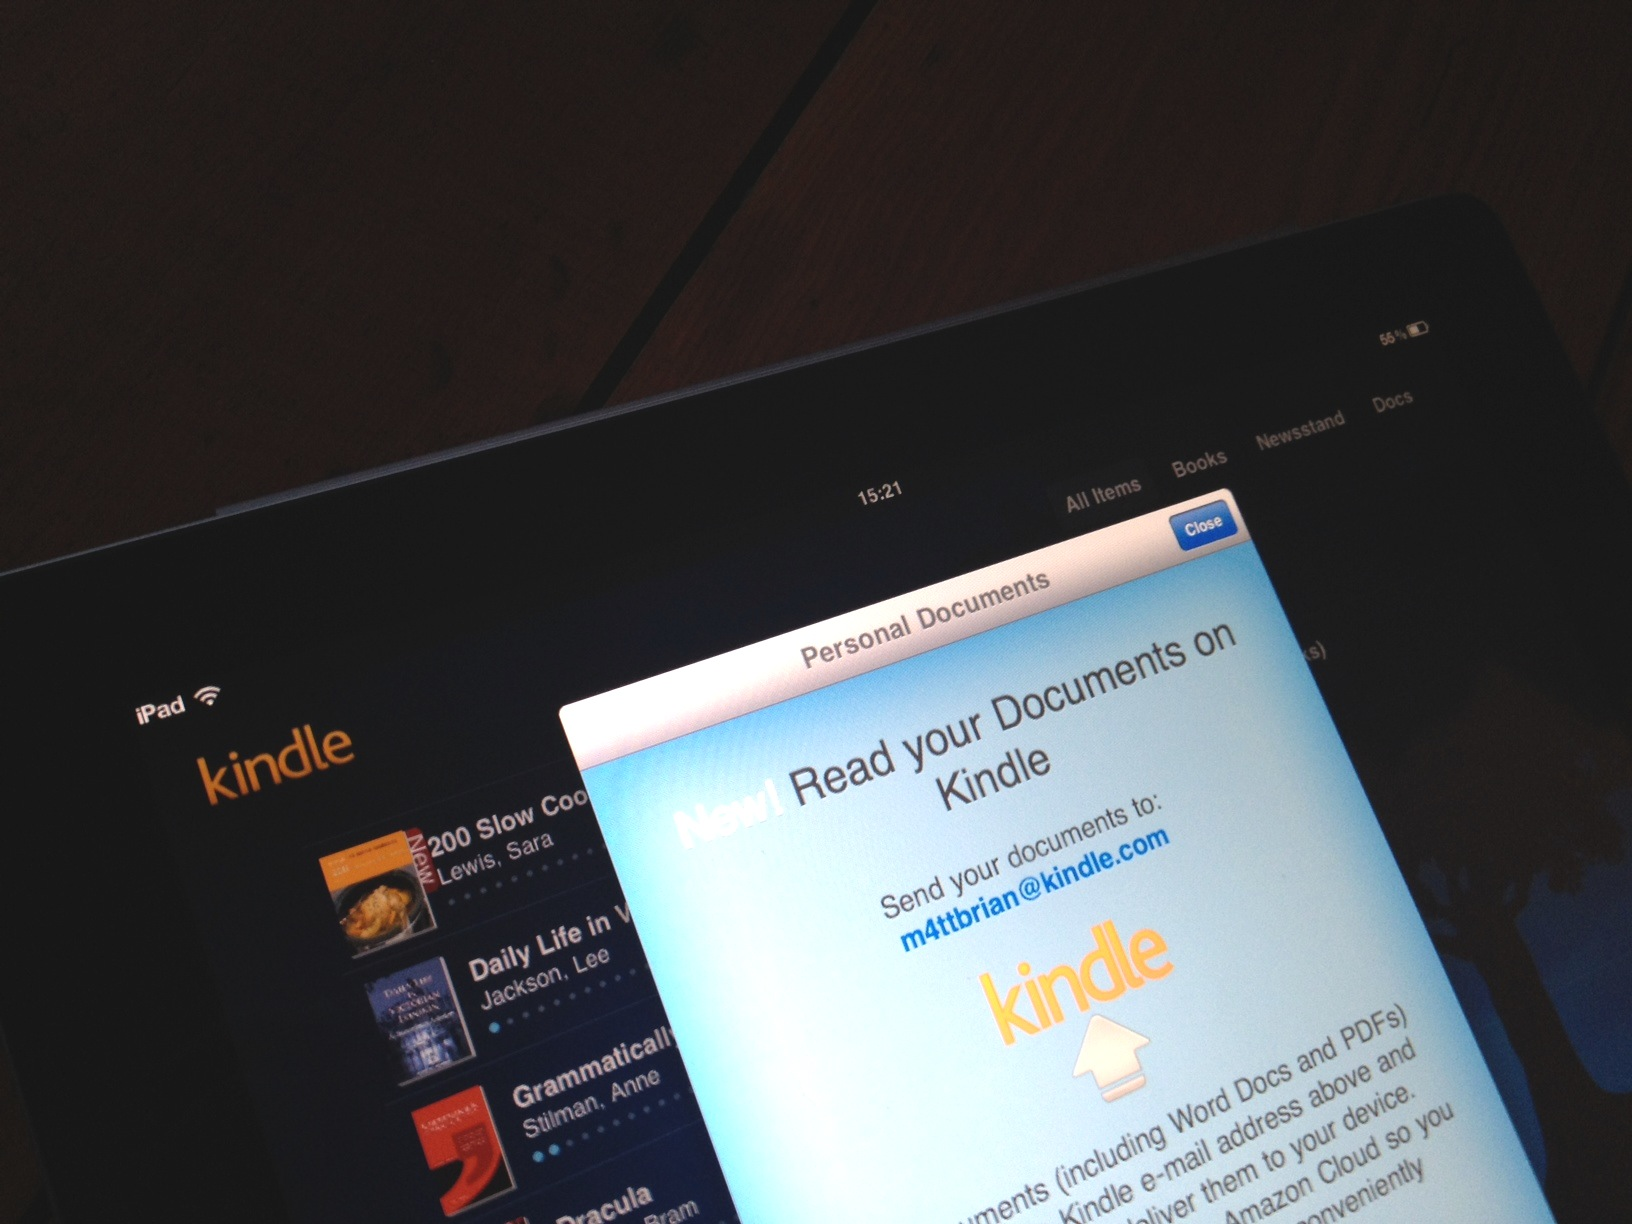 Amazon updates Kindle for iOS, allows iPad owners to access Kindle Fire magazines